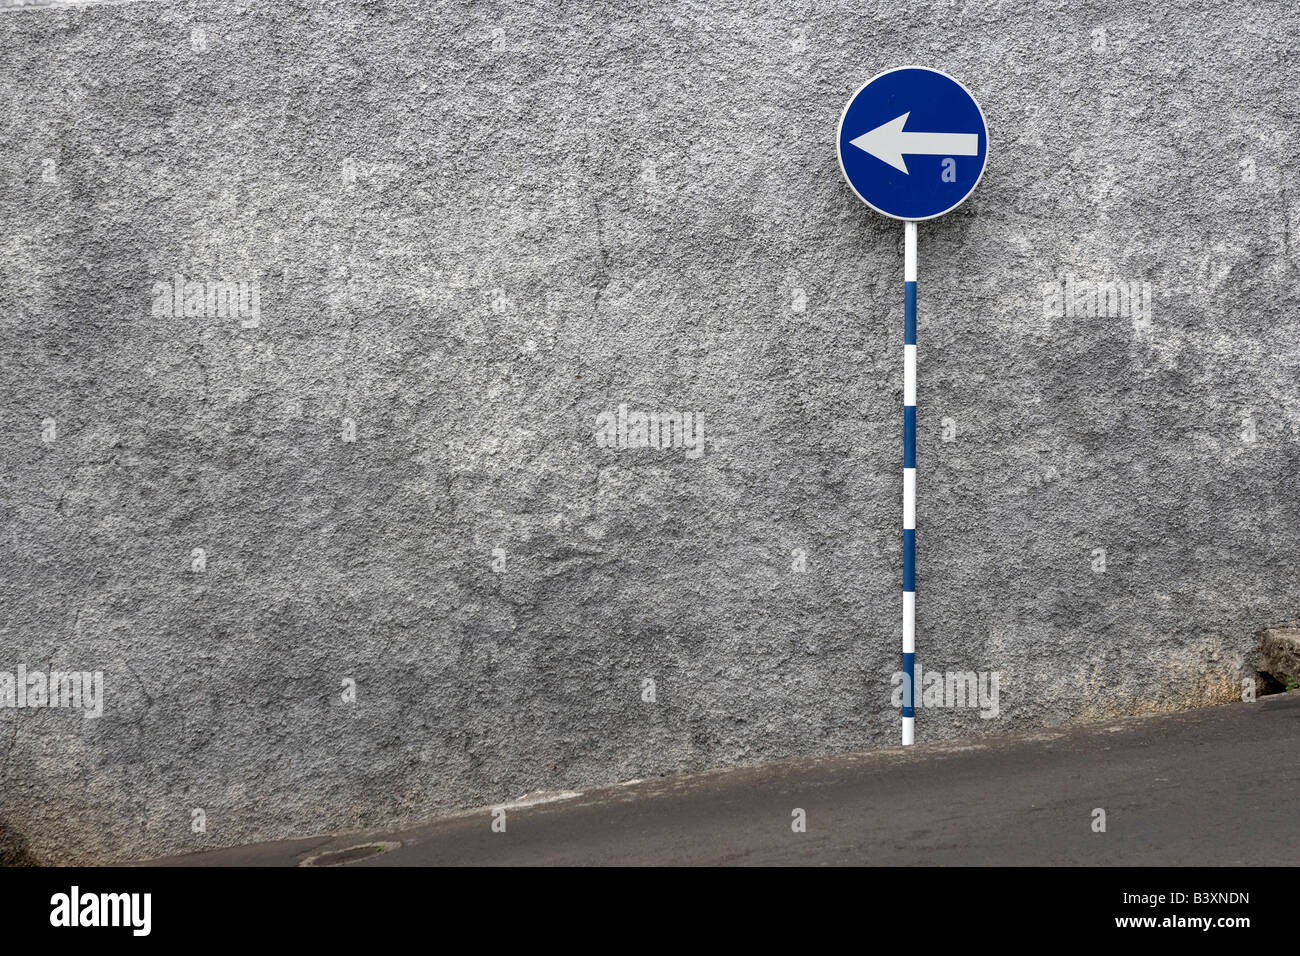 One way sign and stone wall, Madeira, Portugal. - Stock Image